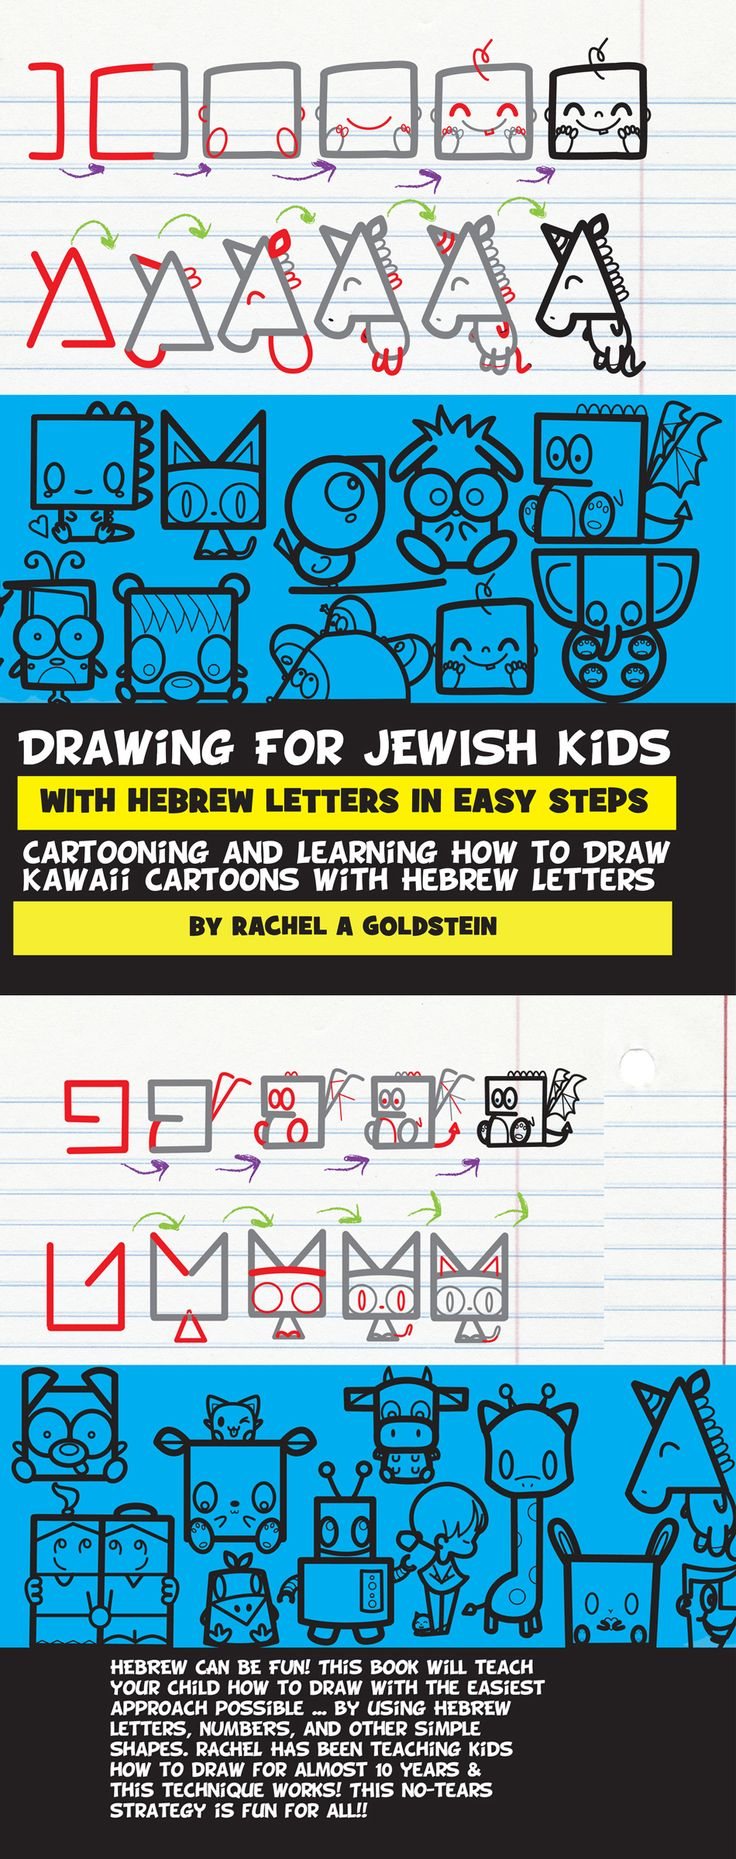 drawing book for kids with hebrew letters - Drawing Books For Kids